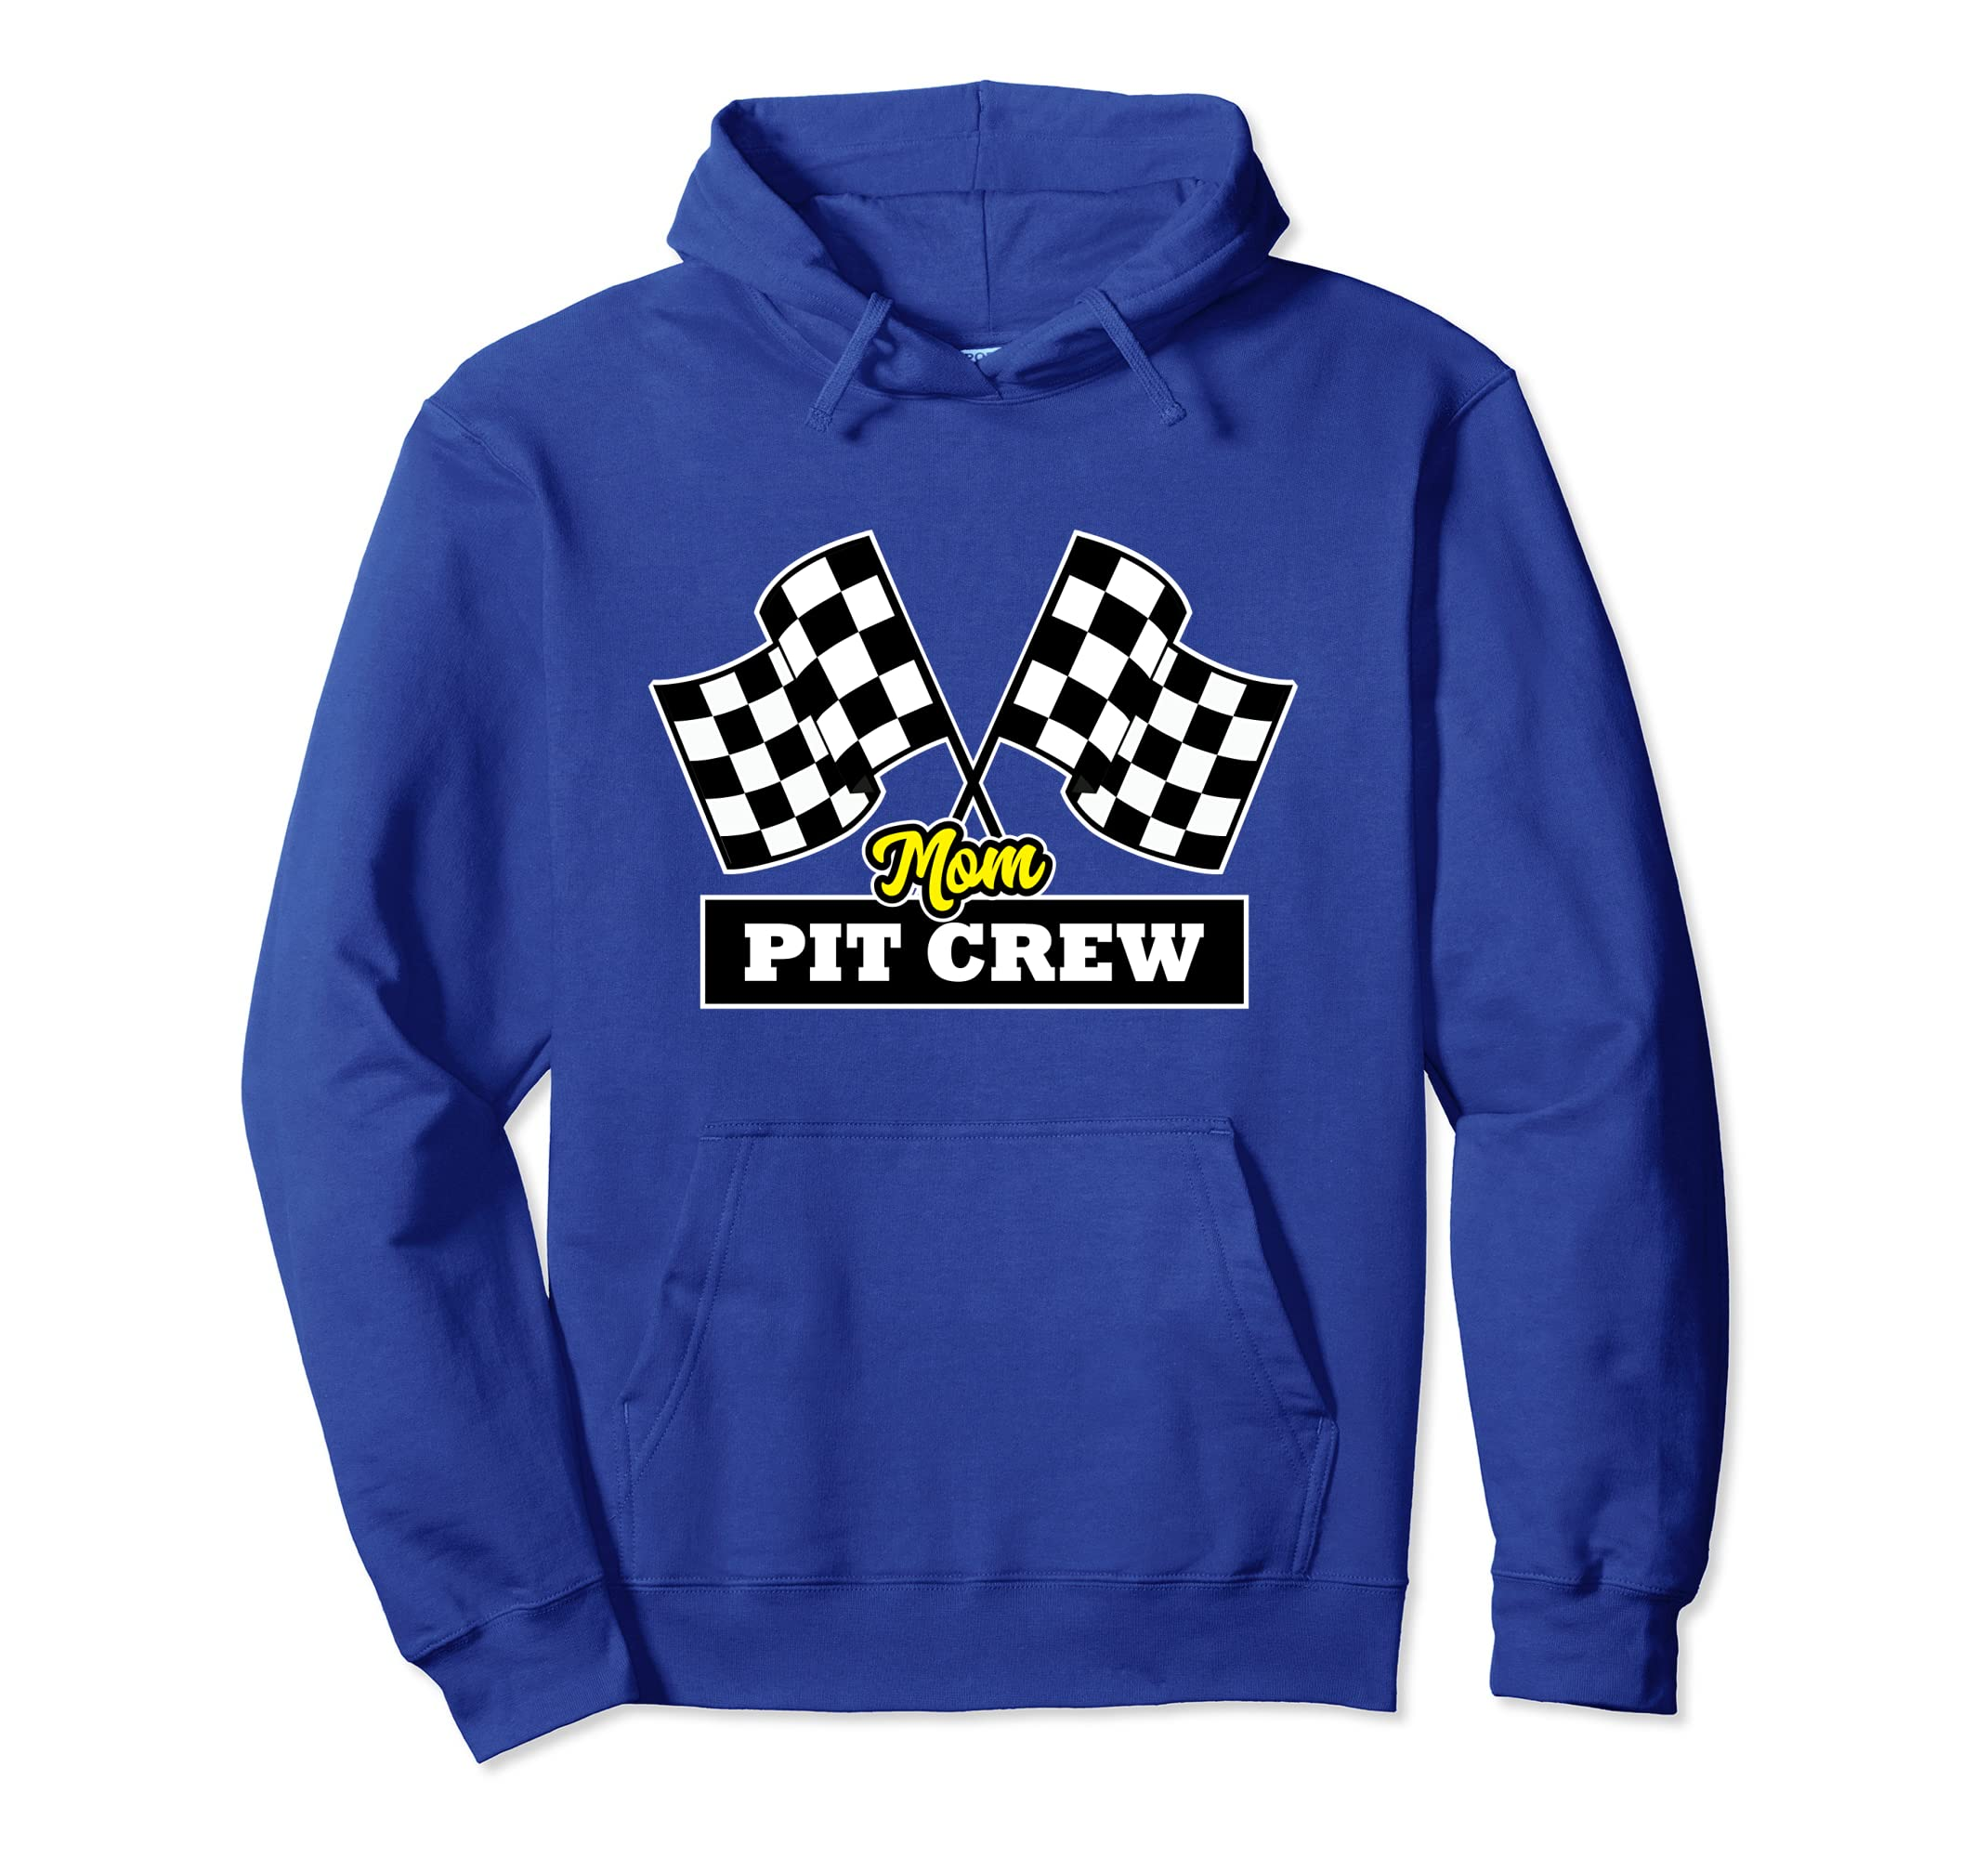 Pit Crew Shirts >> Pit Crew Shirts For Racing Party Mom Pit Hoodie Colonhue Colonhue Com